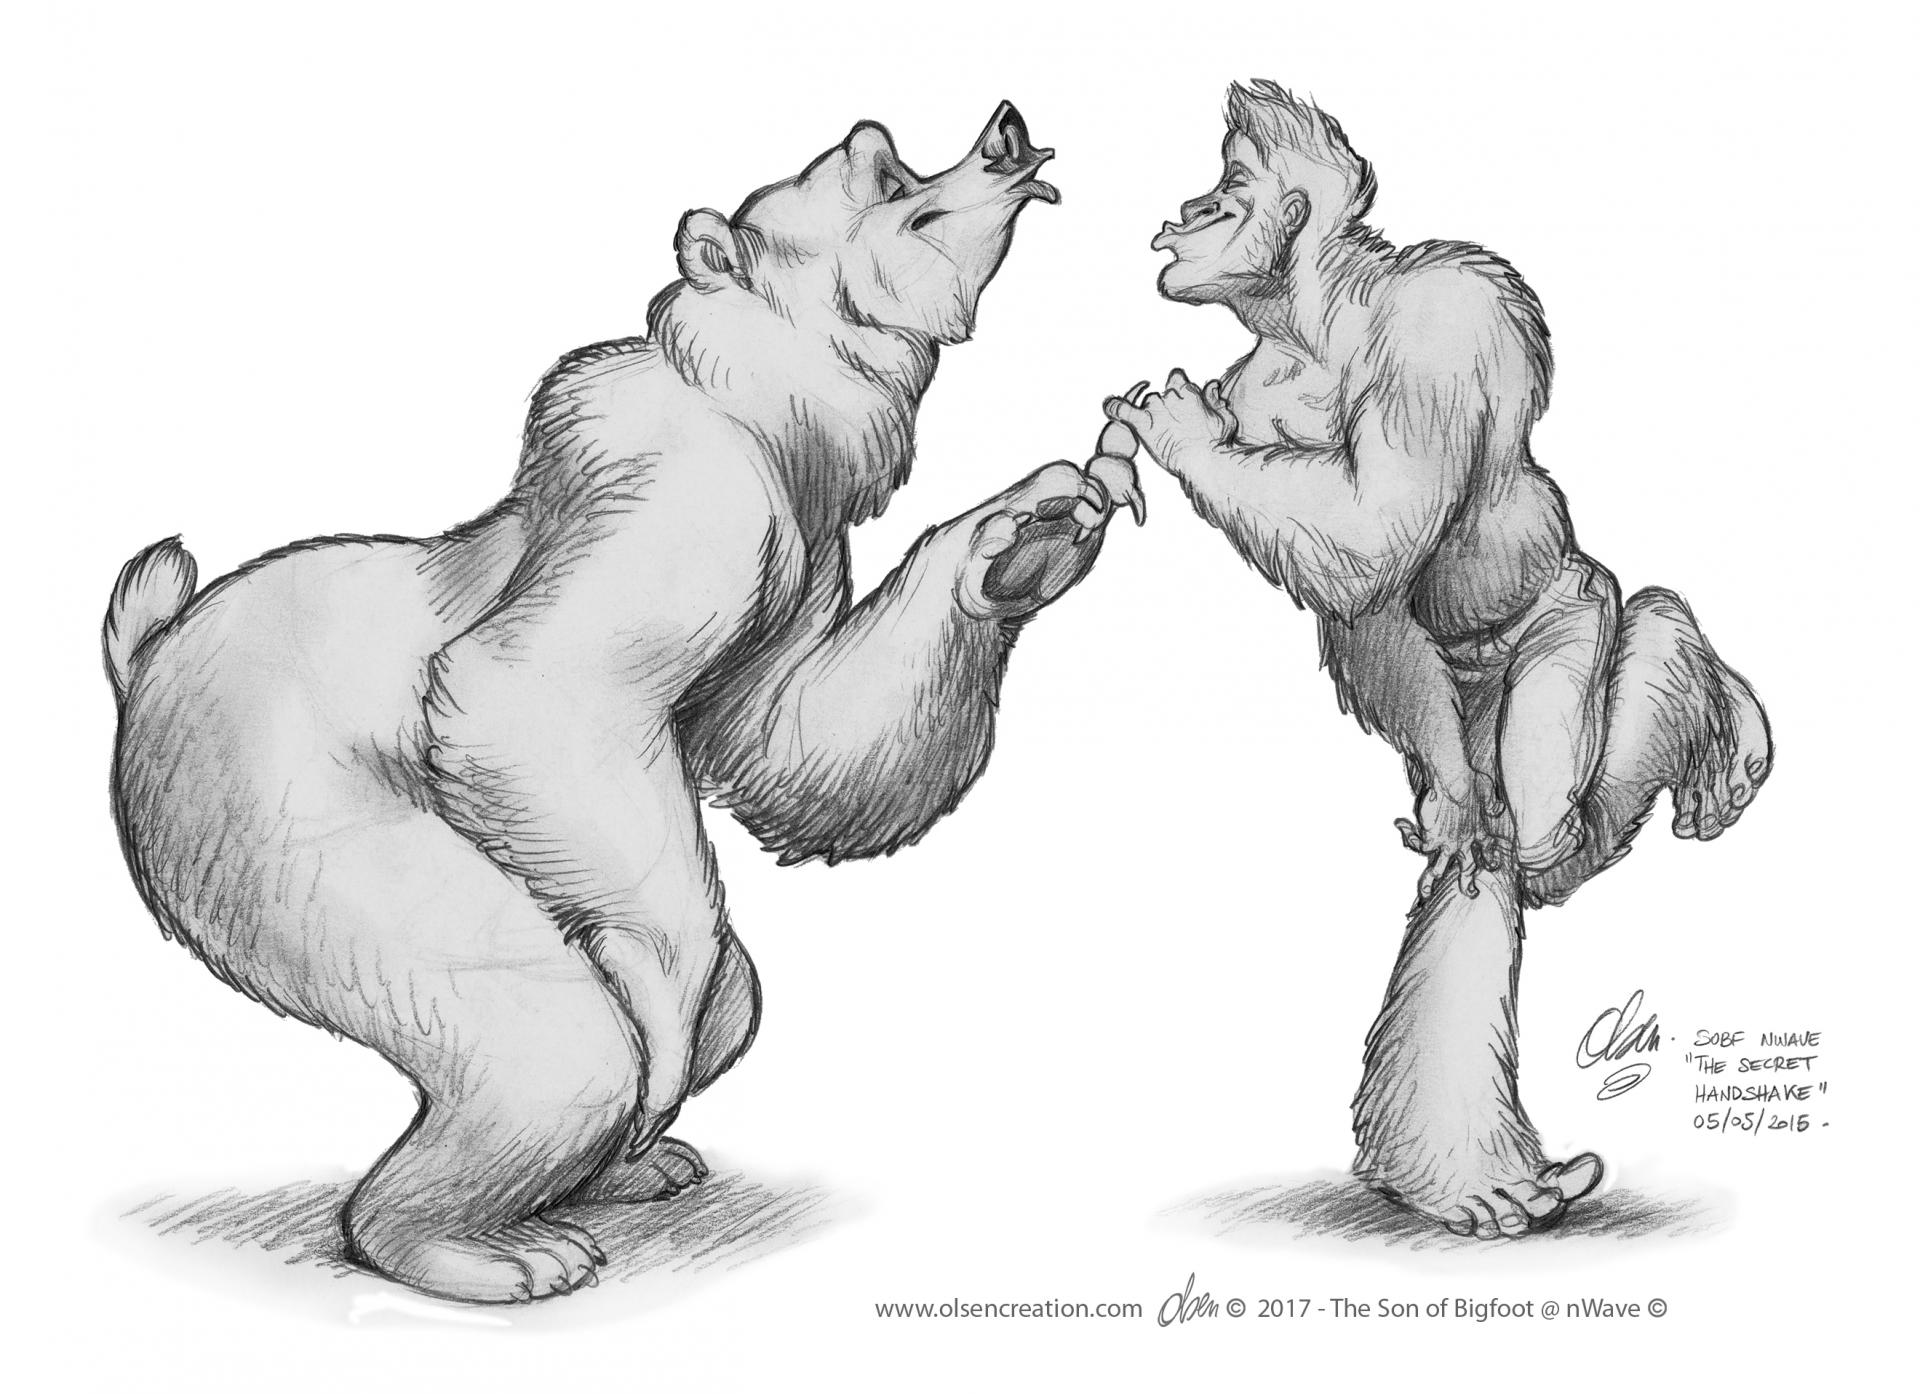 Wilbur and bigfoot the secret paws shake